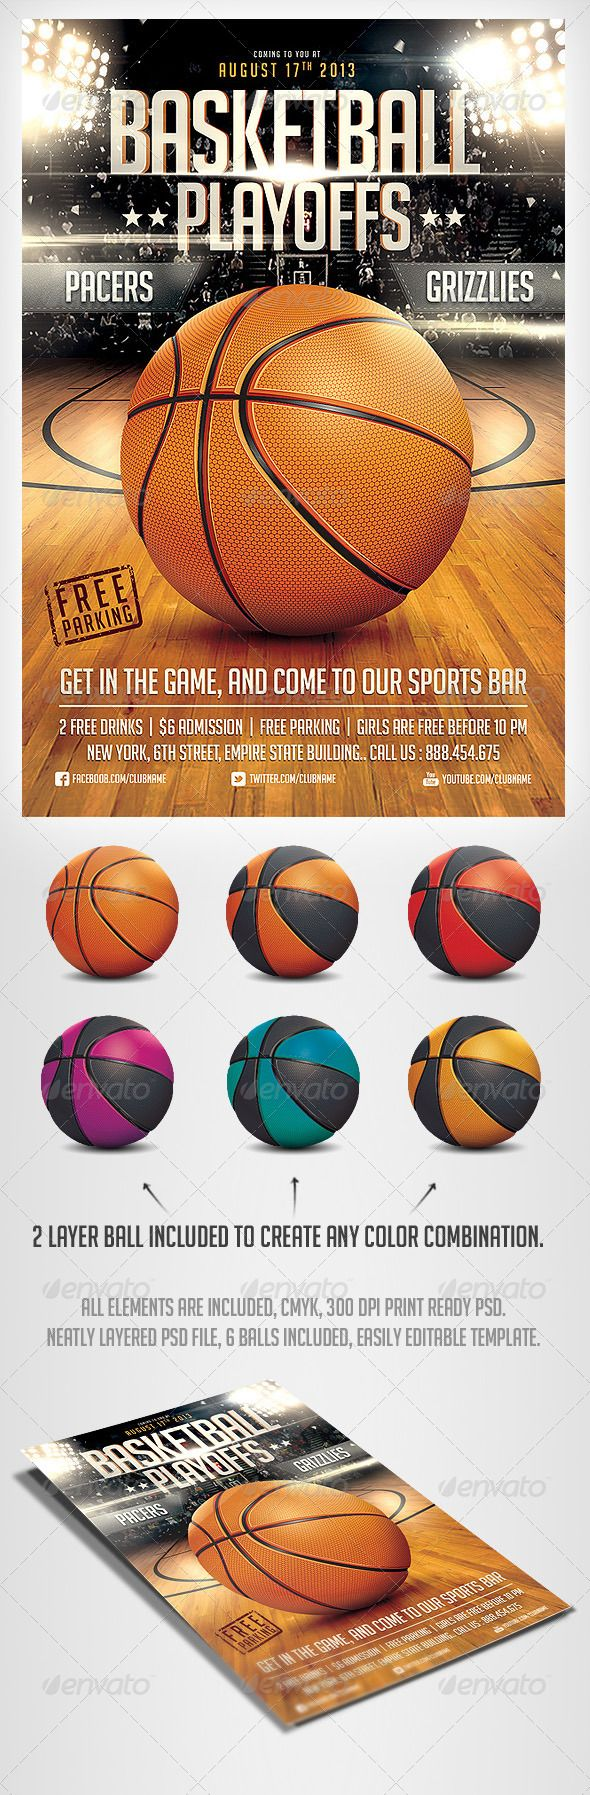 12 best BBall images on Pinterest | Basketball, Basketball games and ...